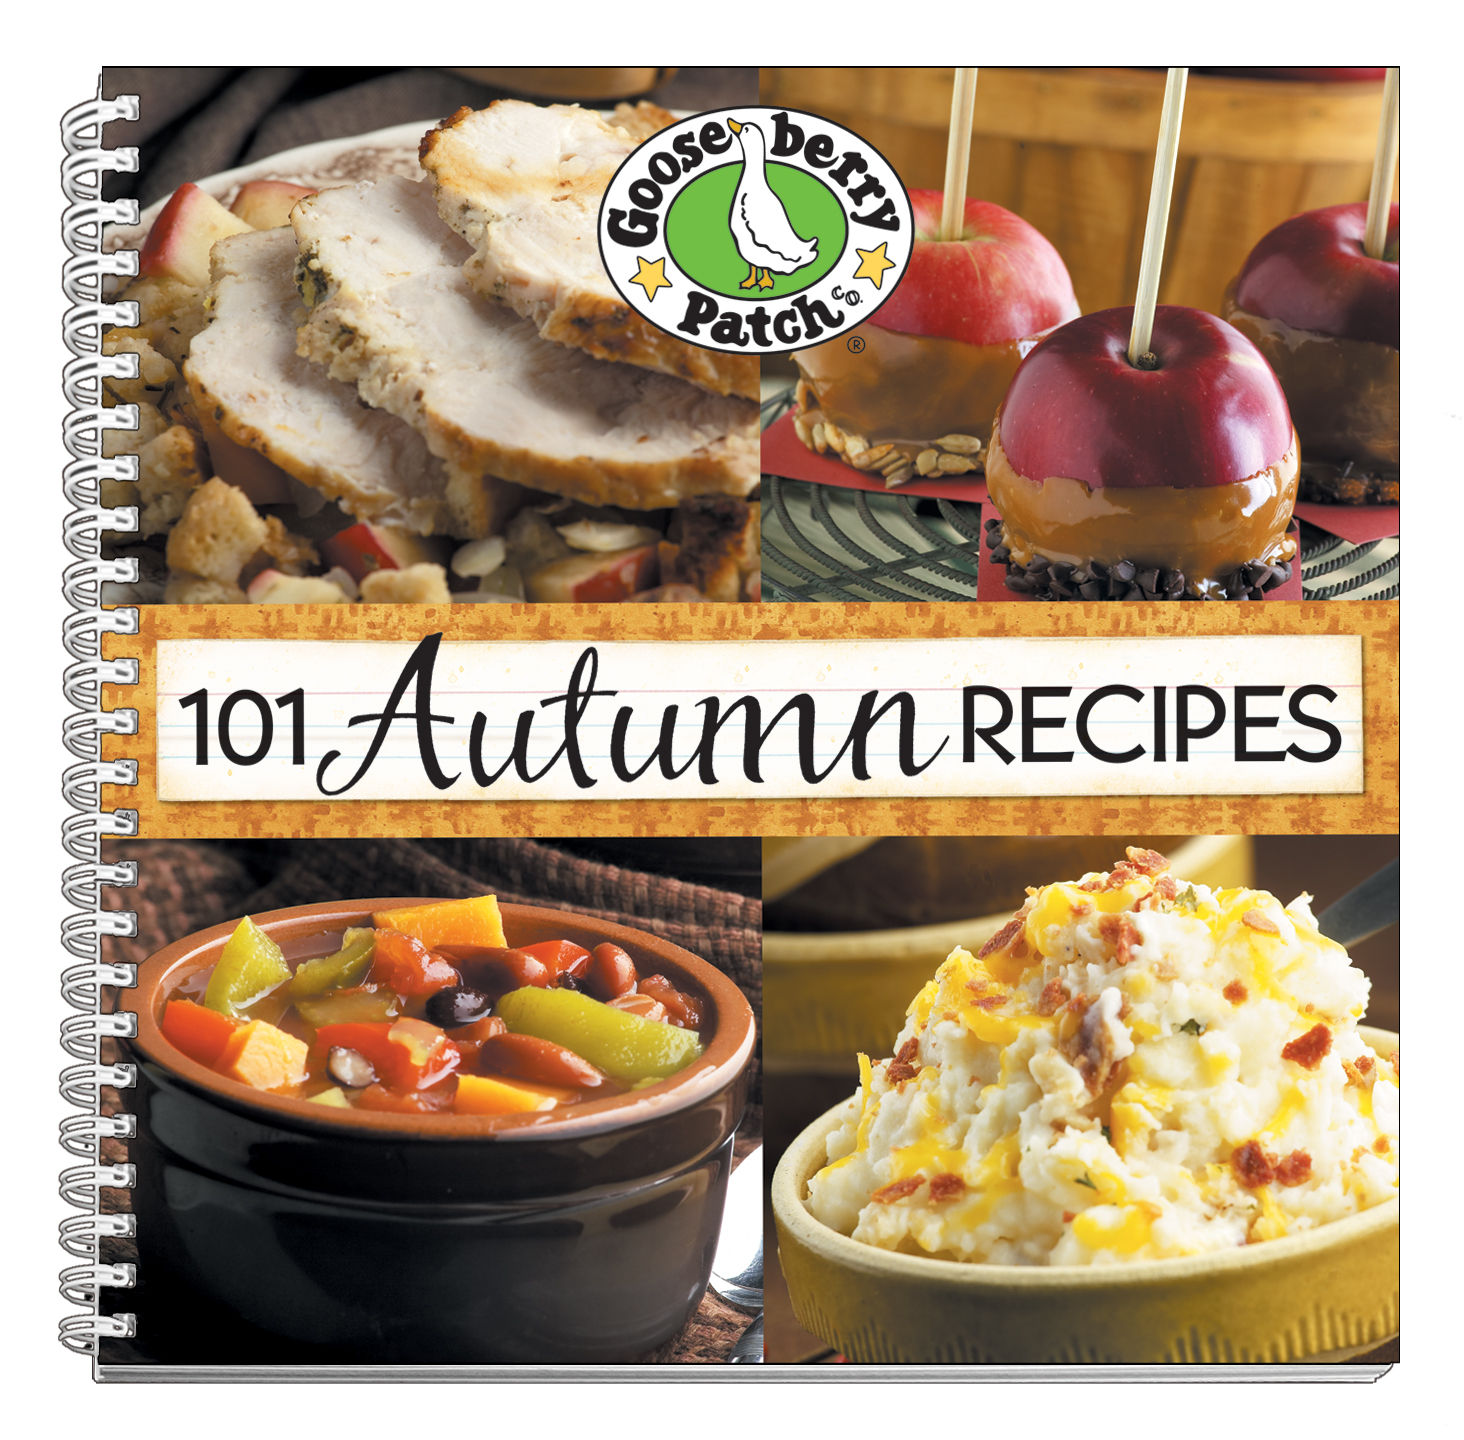 Want to learn more about 101 Autumn Recipes or add it to your cookbook  collection? Click below!